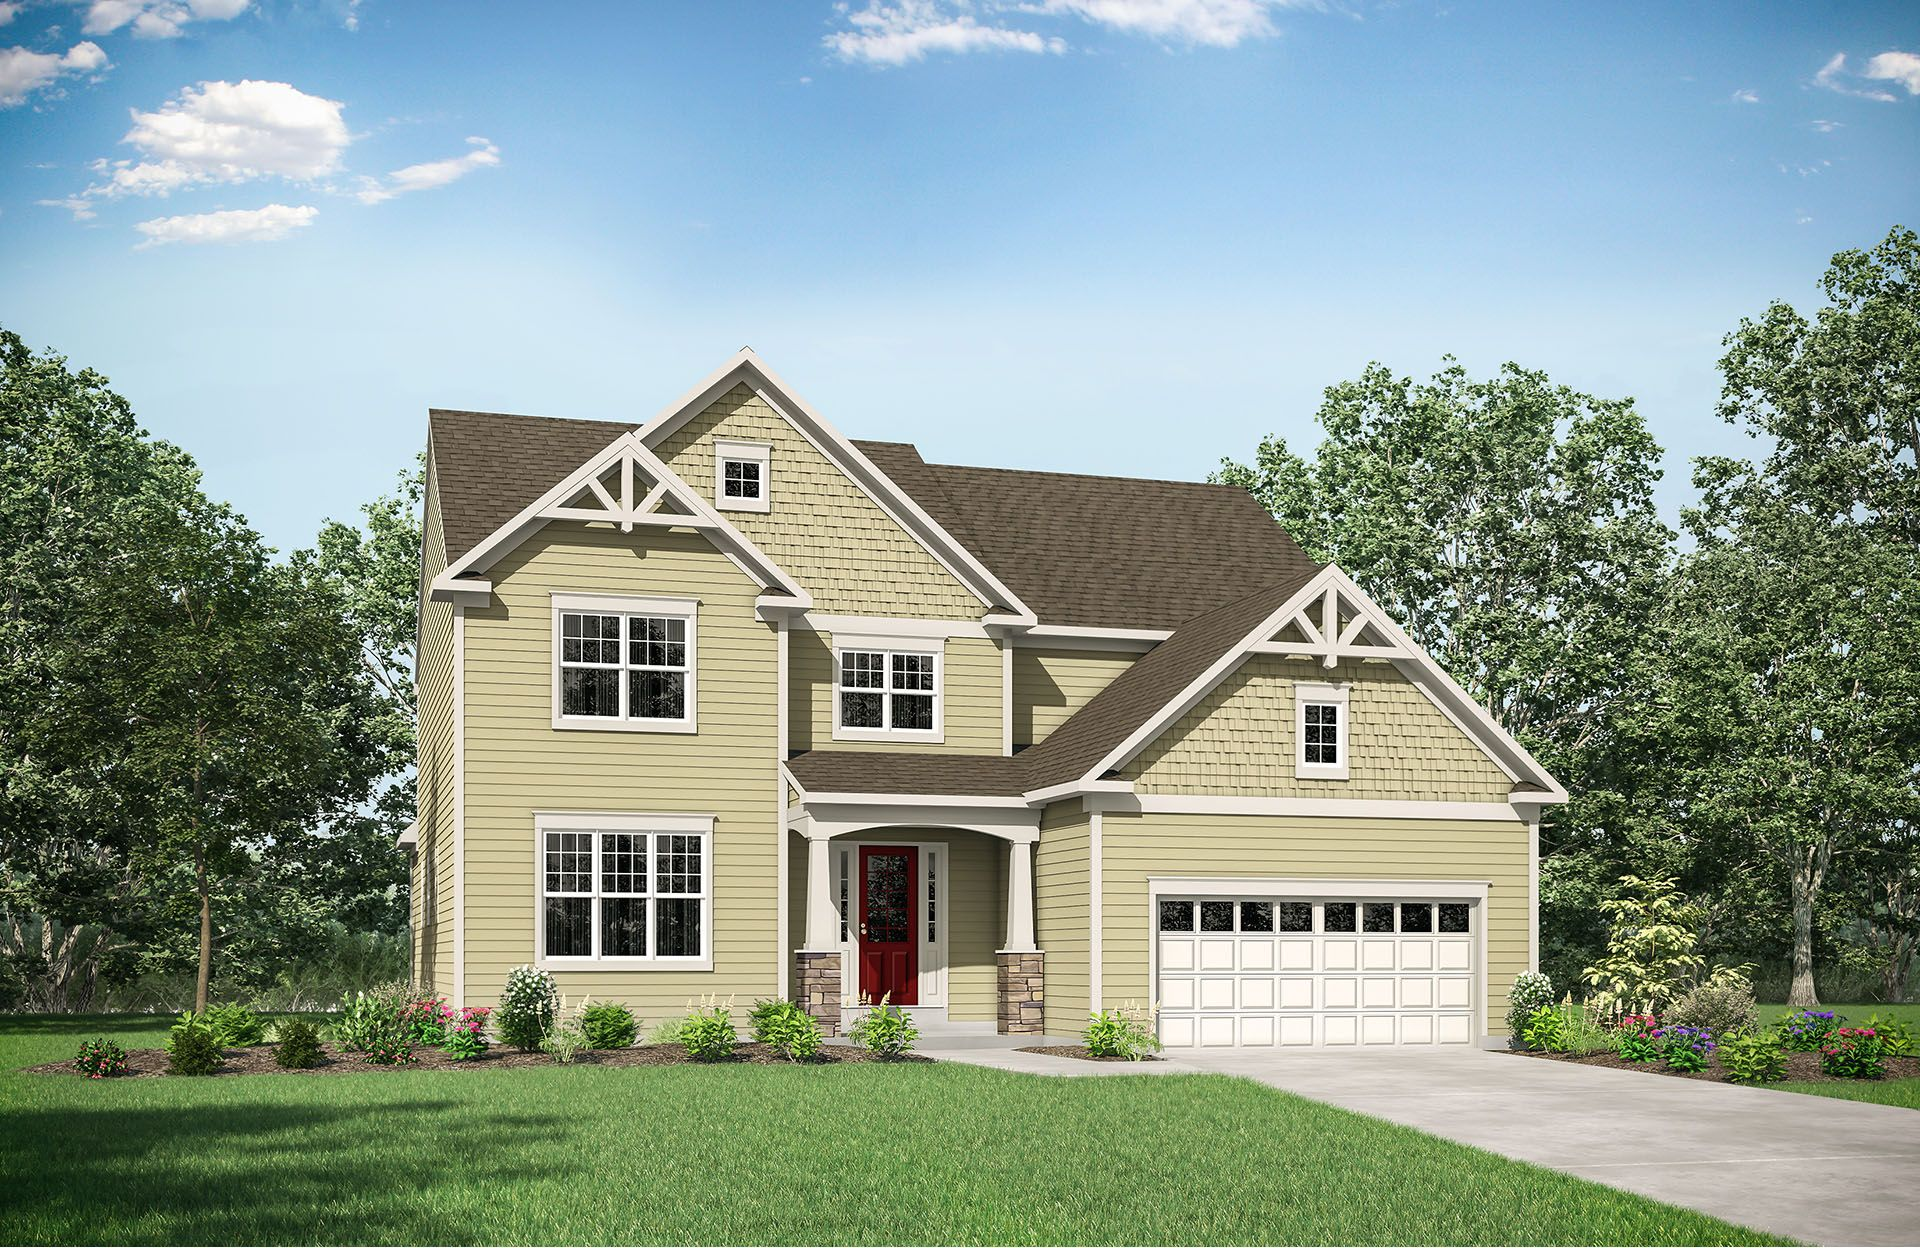 Single Family for Active at Glad Hill Estates - Rowan 3600 Donna Court Monrovia, Maryland 21770 United States